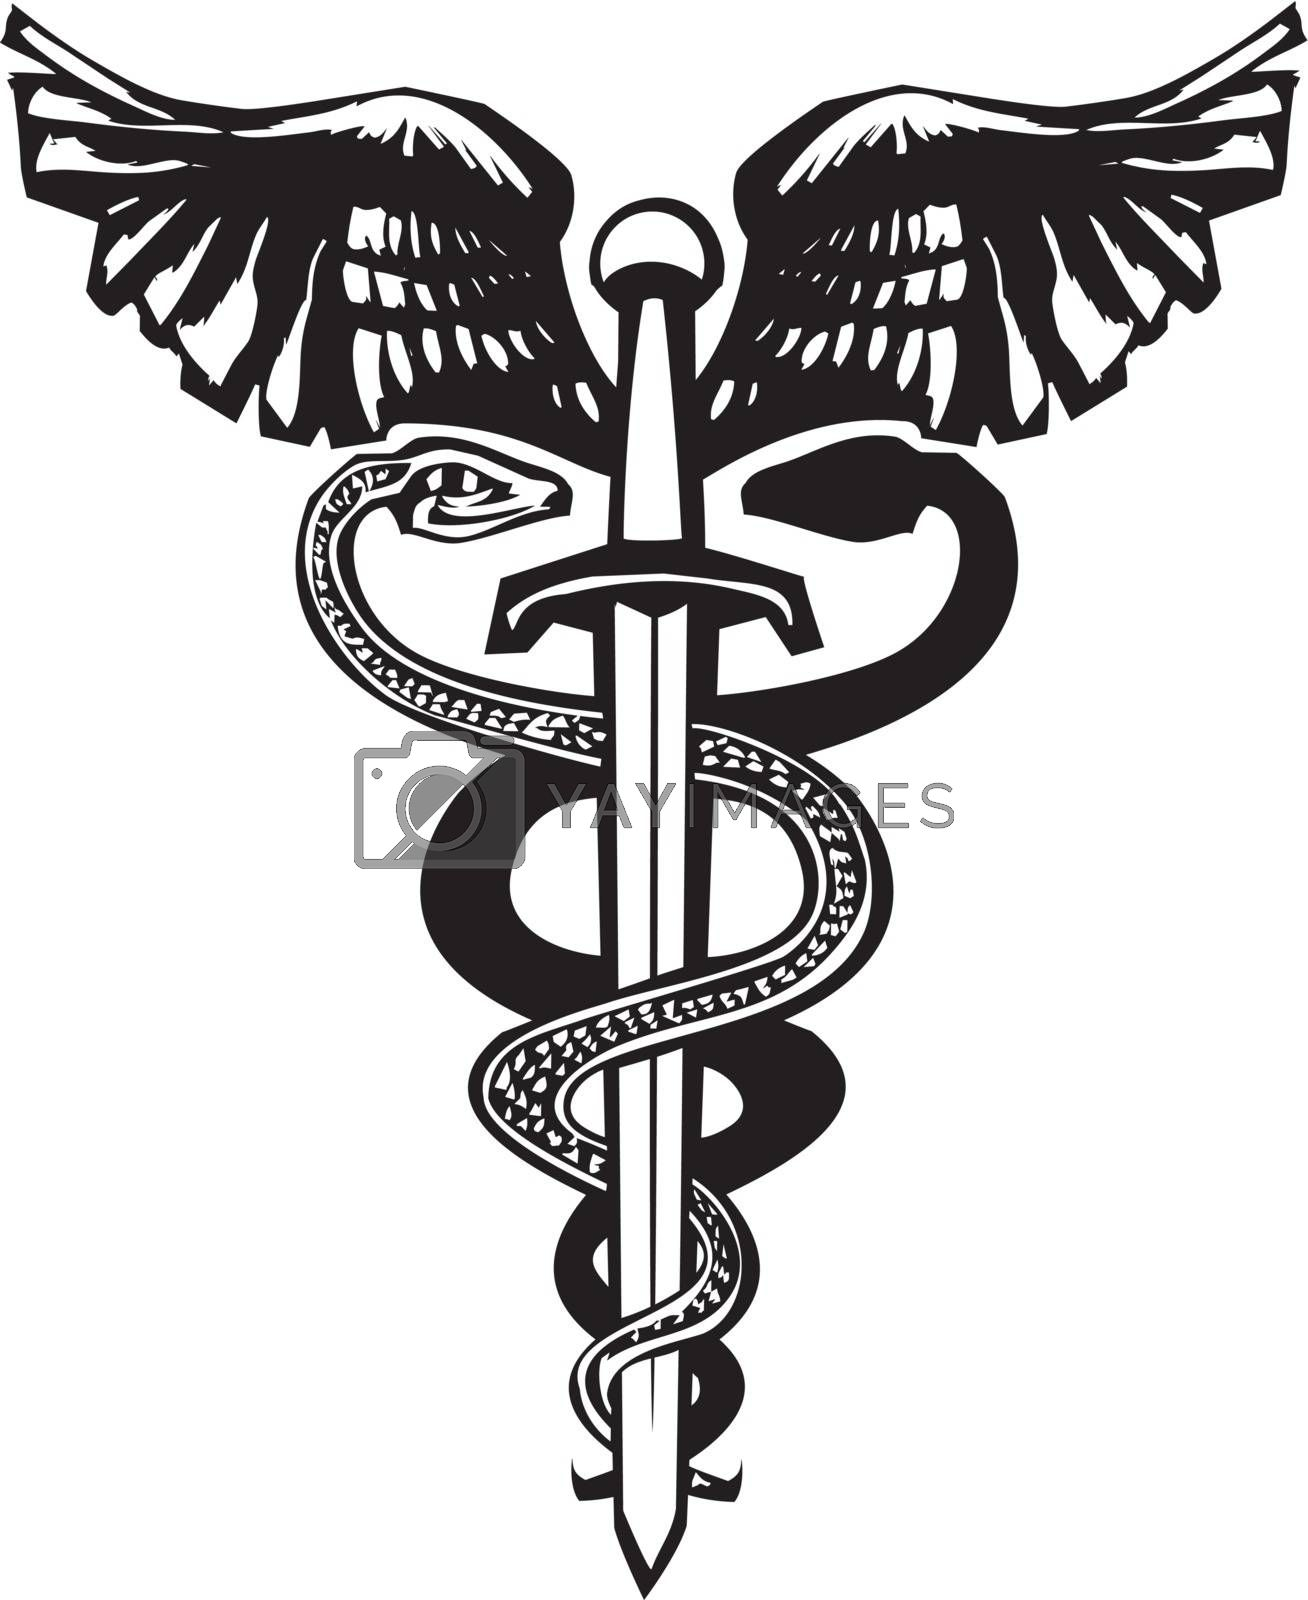 Woodcut variant image of the Caduceus with the snake entwined around a sword.